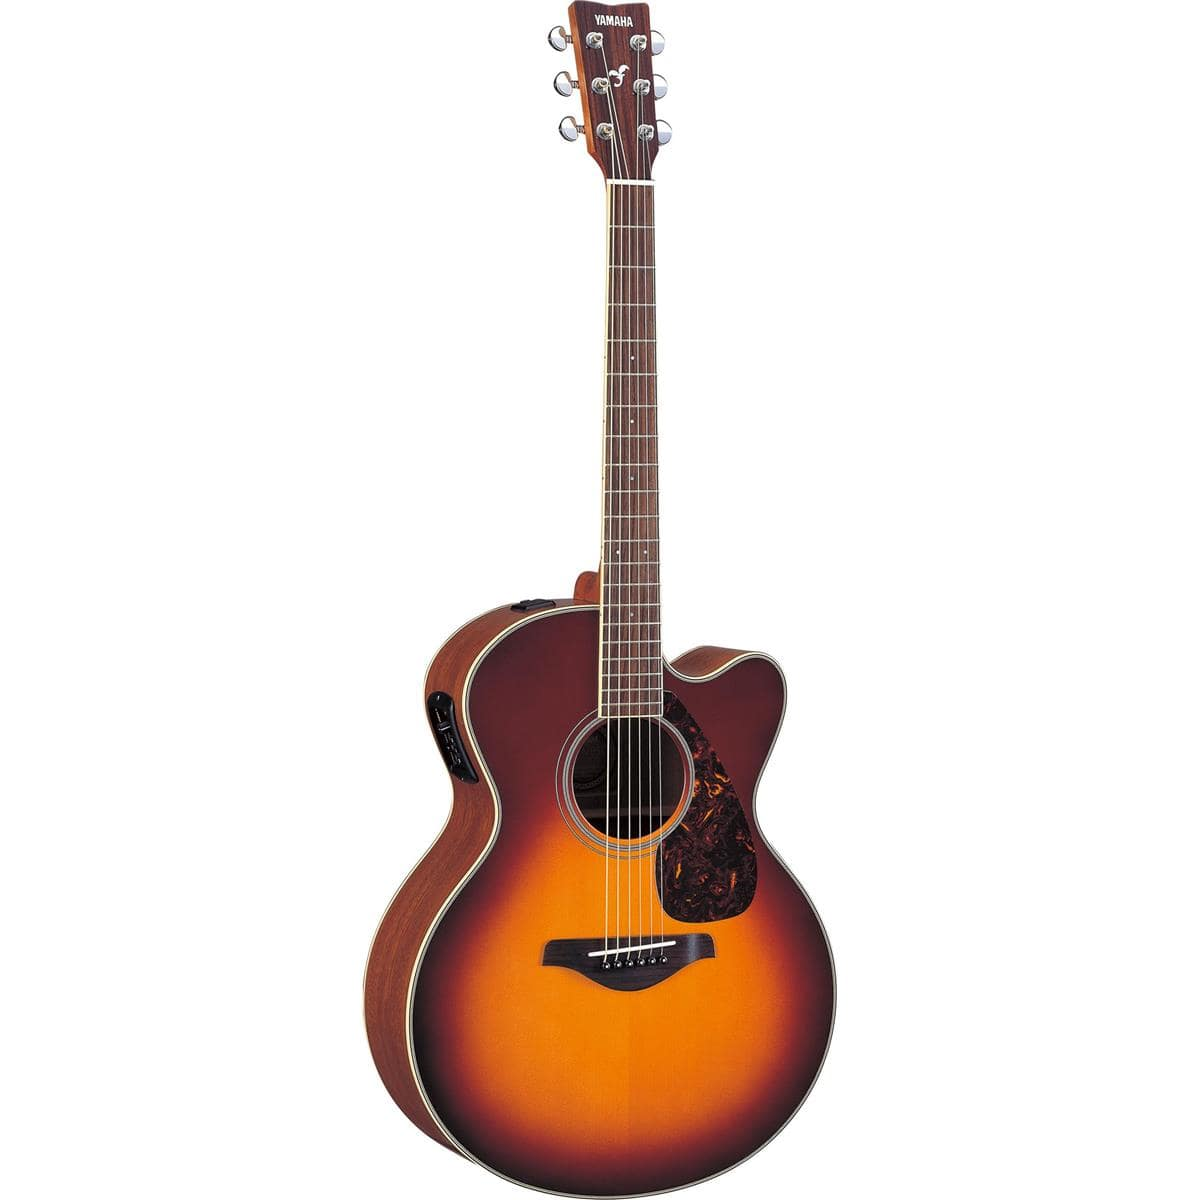 Yamaha Jumbo Solid Top Acoustic-Electric Guitars: FJX720SC $300 or FJX730SC $330 + free shipping